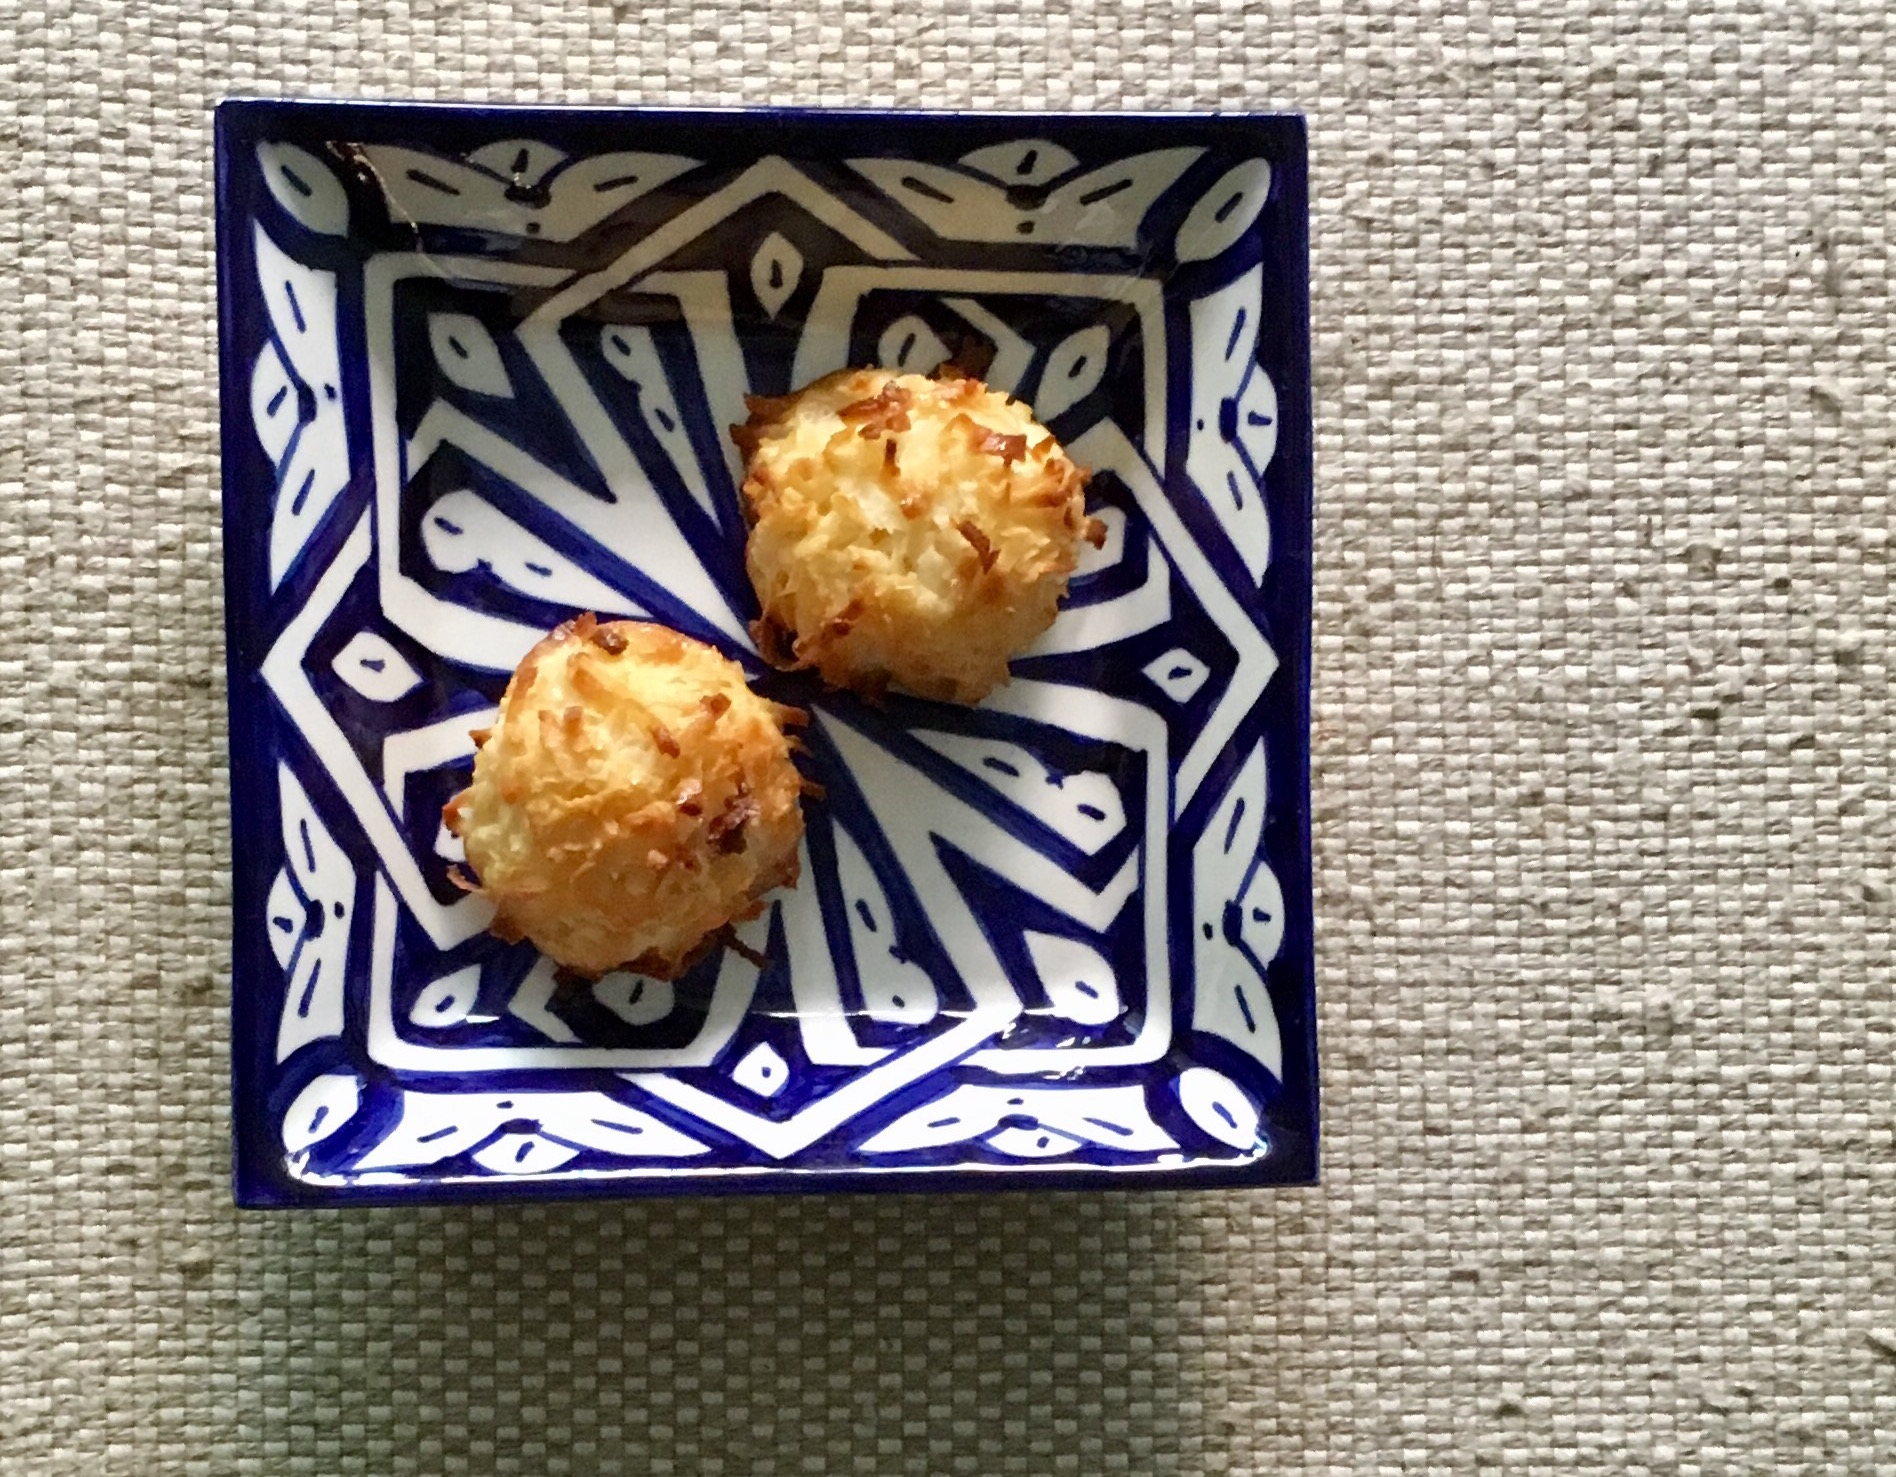 Delectable toasted coconut macaroons, like the ones we had after our hamman in Fès, Morocco